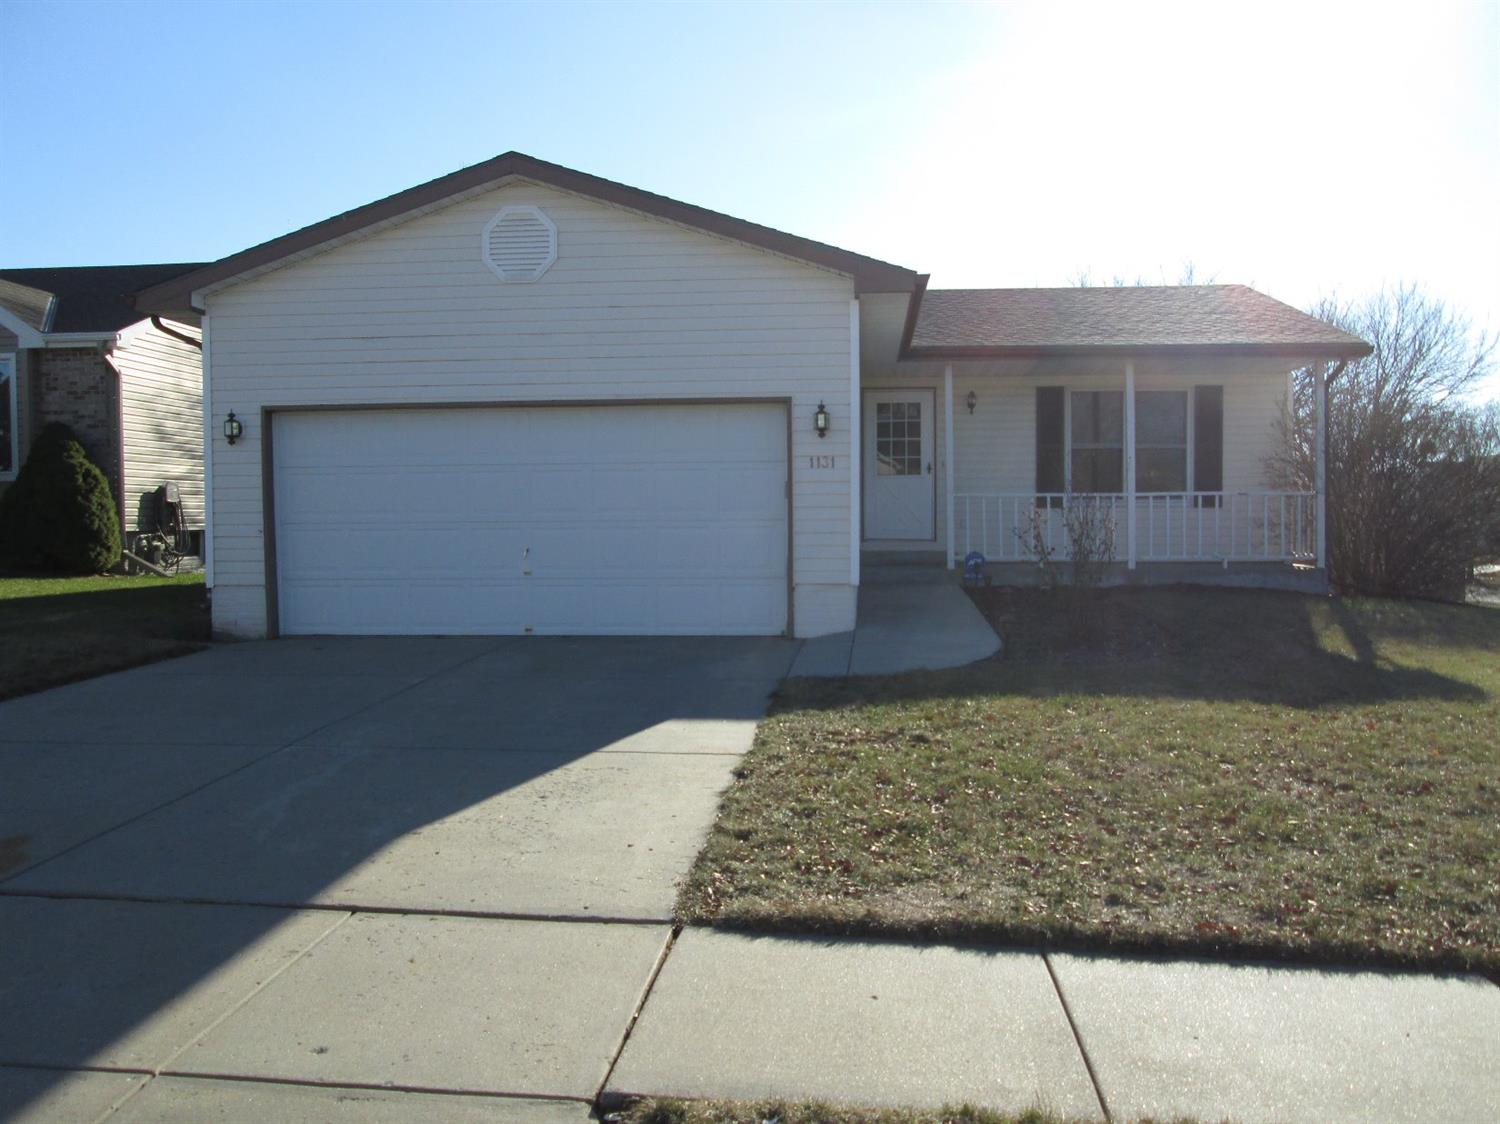 Photo of 1131 West Burt Drive  Lincoln  NE